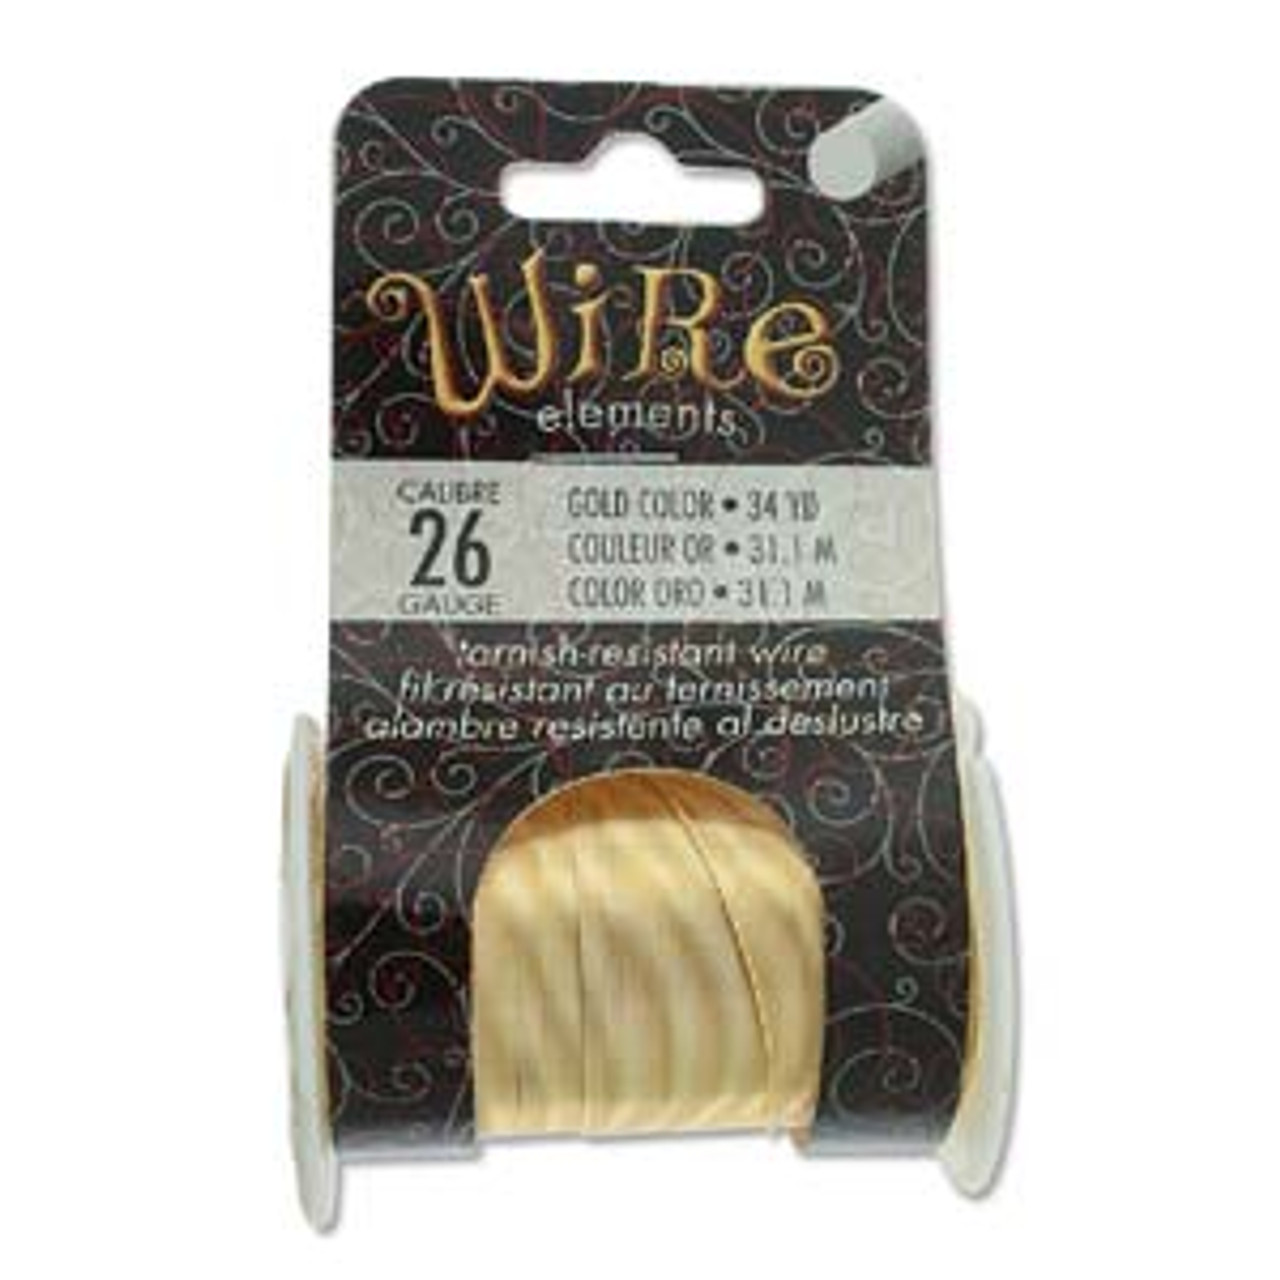 26ga Tarnish Resistant Wire Elements- Gold - 34yds